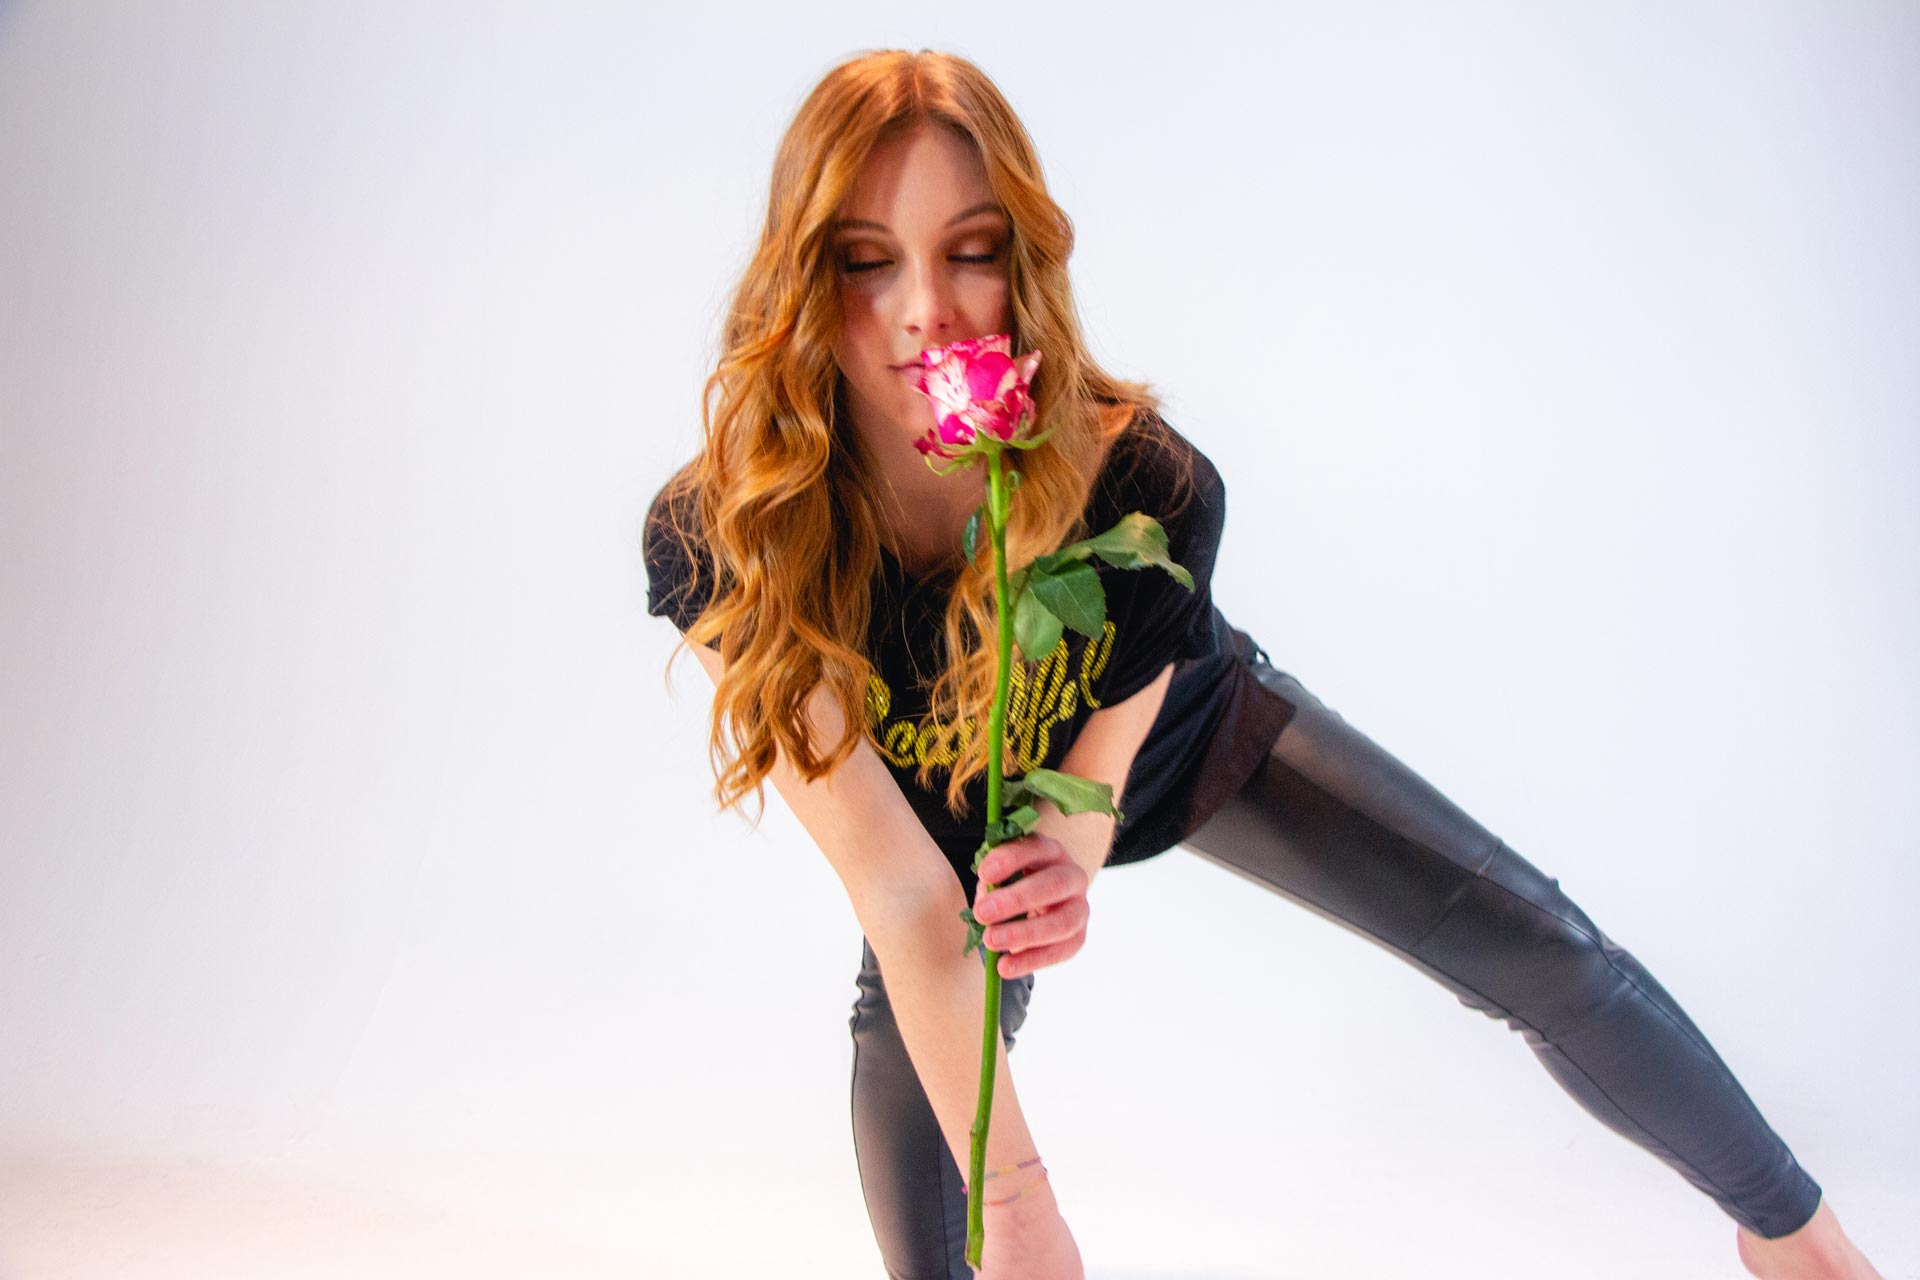 Colorazione corallo | Shooting Flower | Danys Fashion Carpi